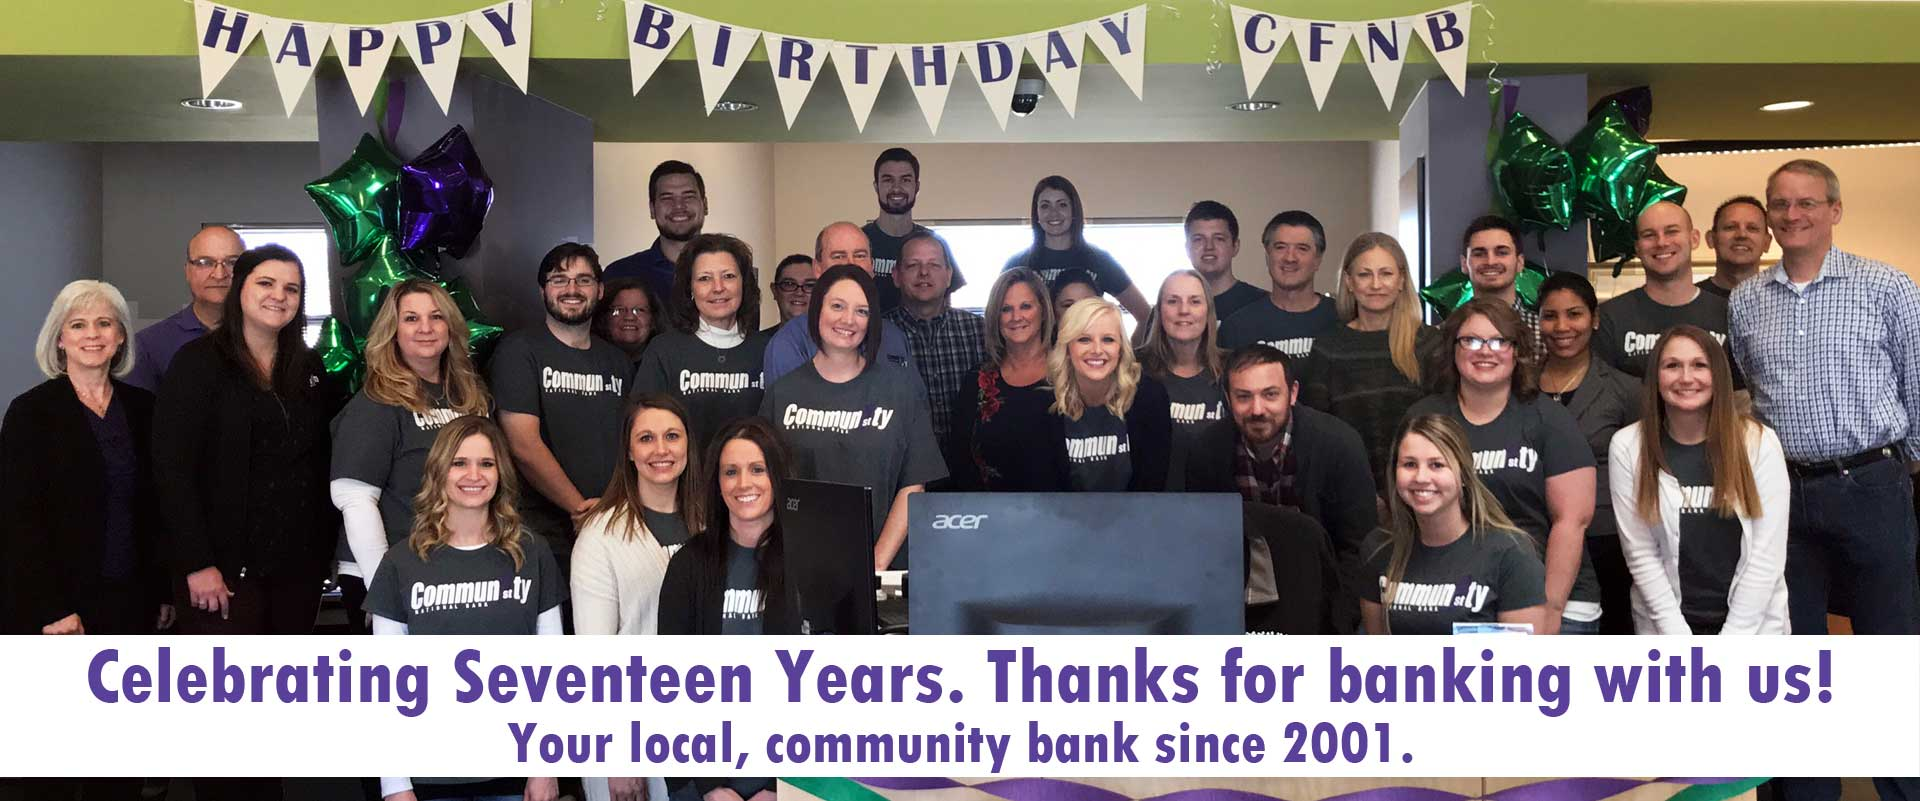 Celebrating Seventeen Years. Thanks for banking with us! Your local, community bank since 2001.